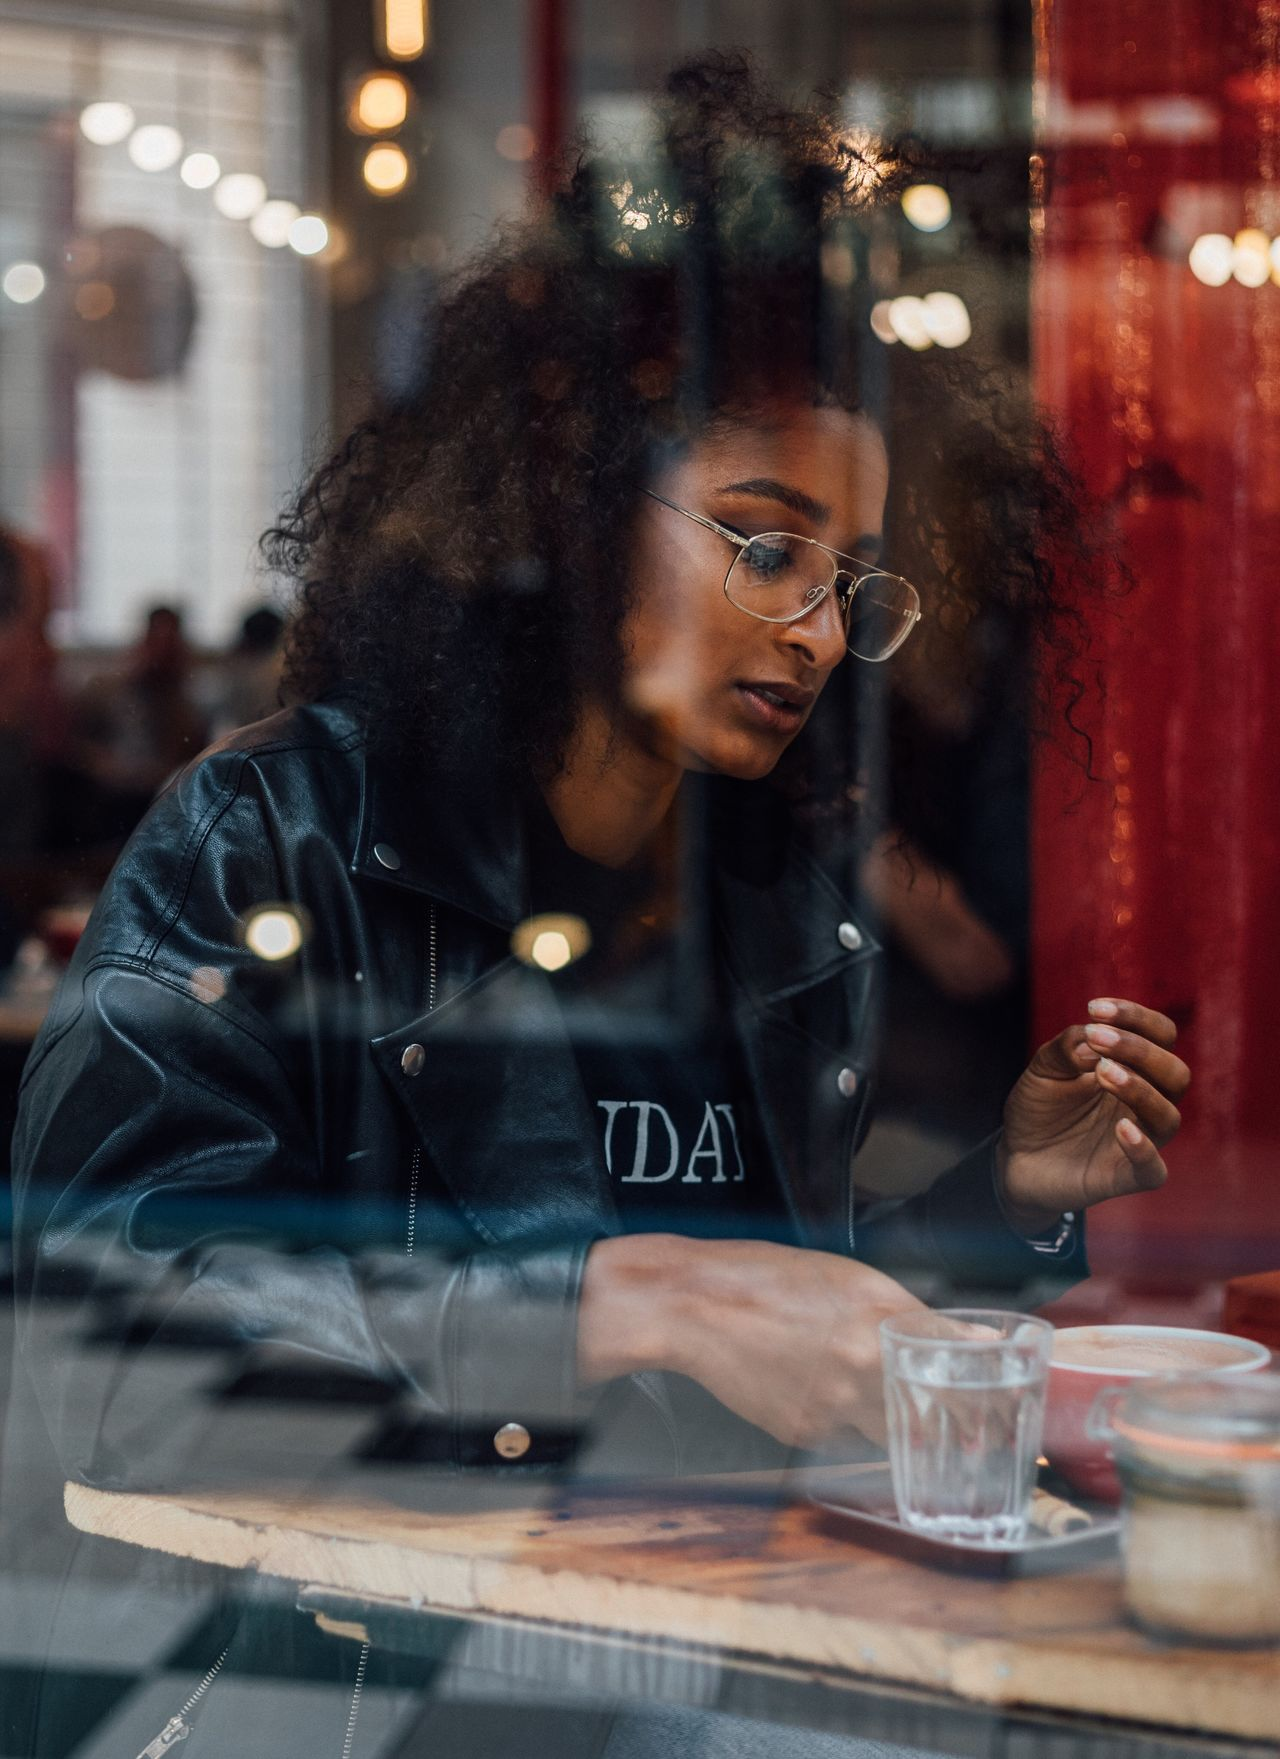 Young woman seen through window at cafe